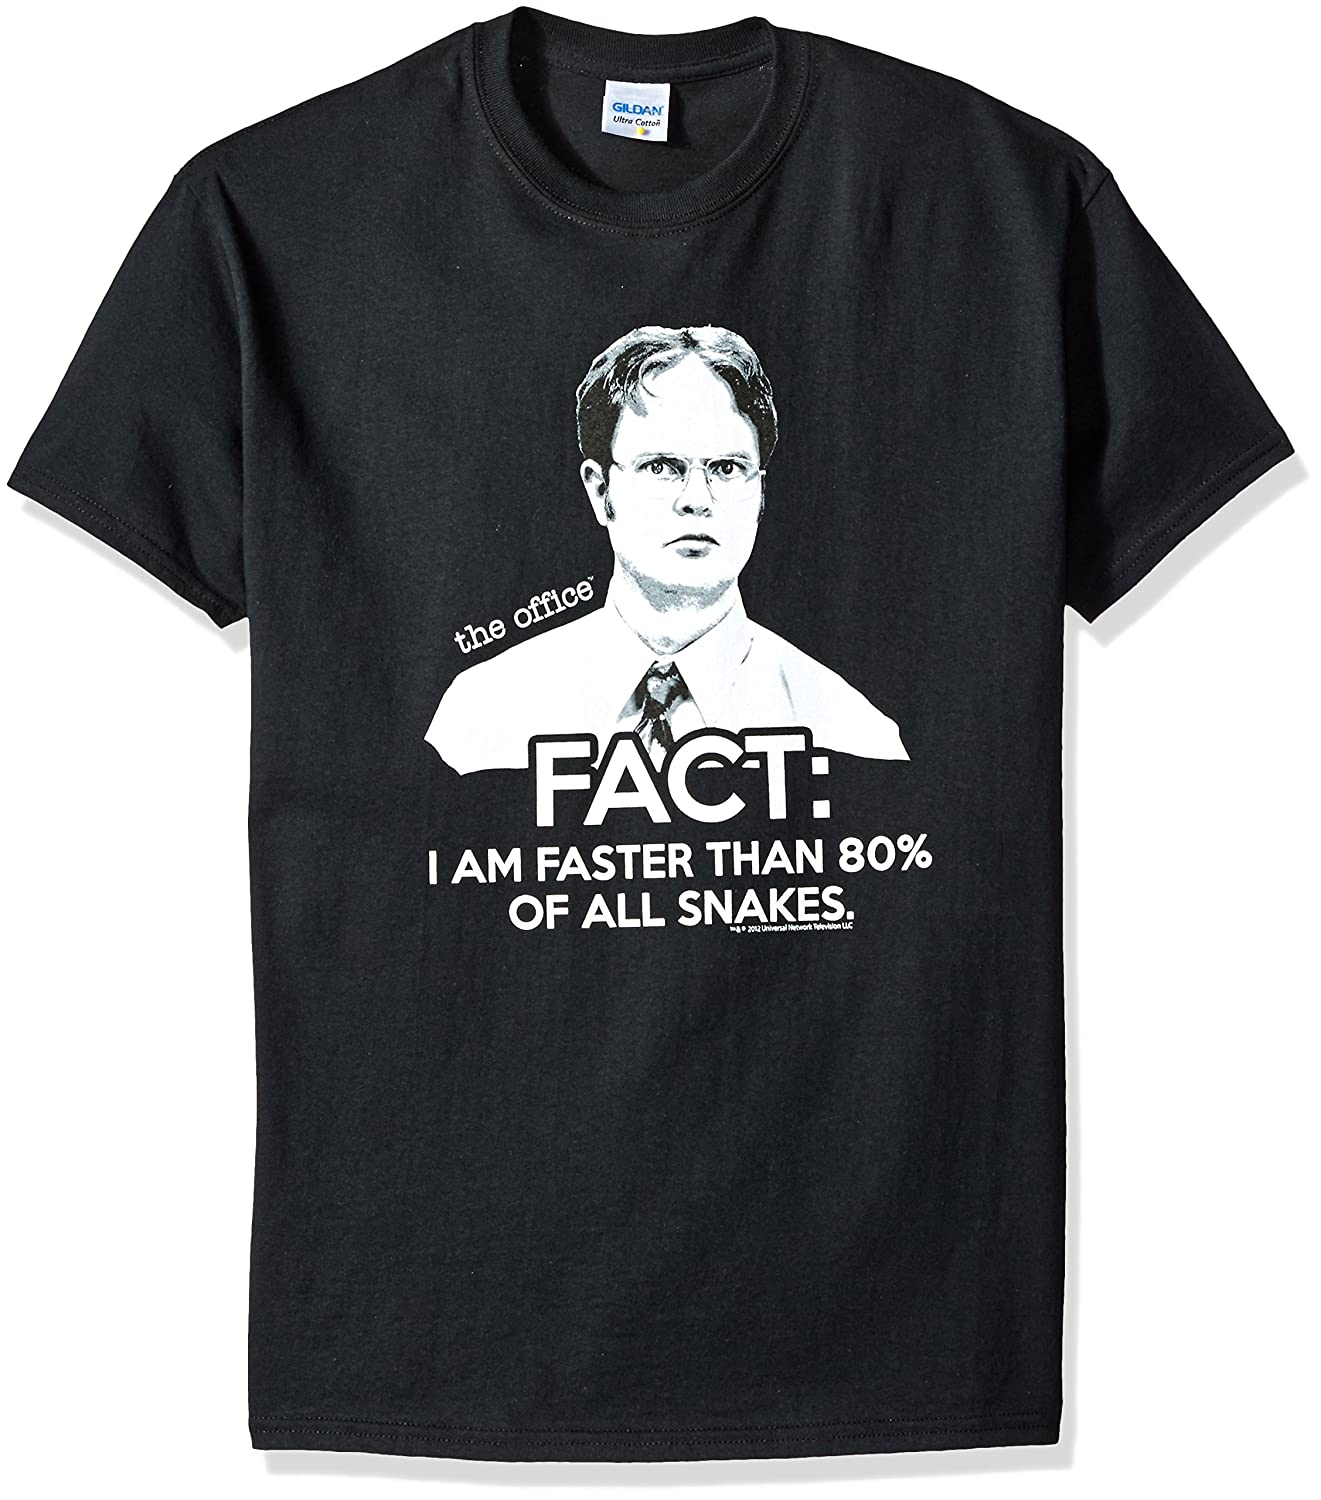 d5e1616eb Amazon.com: The Office Dwight Fact Faster Than Snakes T-Shirt: Clothing